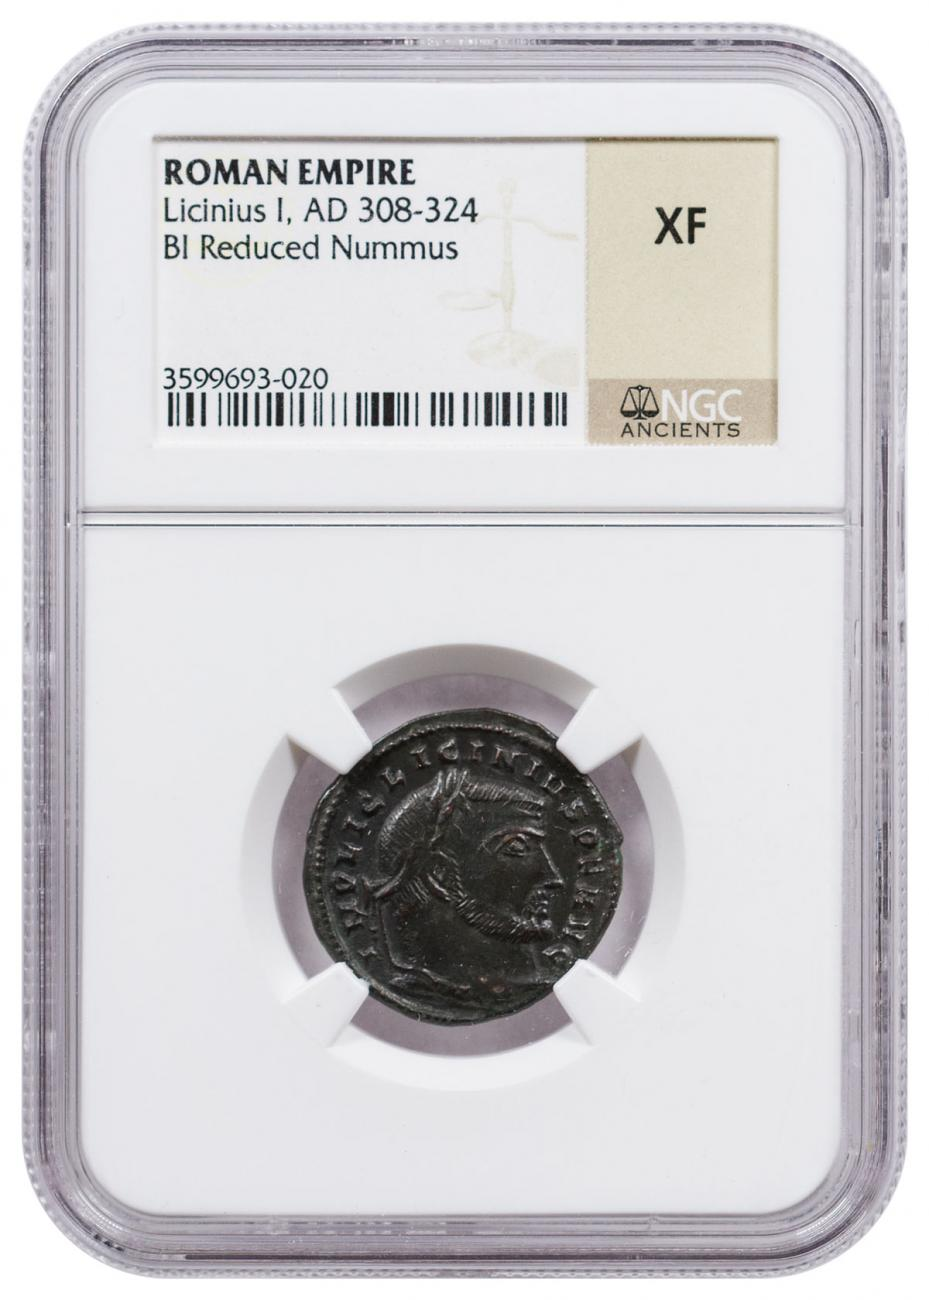 Roman Empire, Billon Reduced Nummus of Licinius (AD 308-324) NGC XF